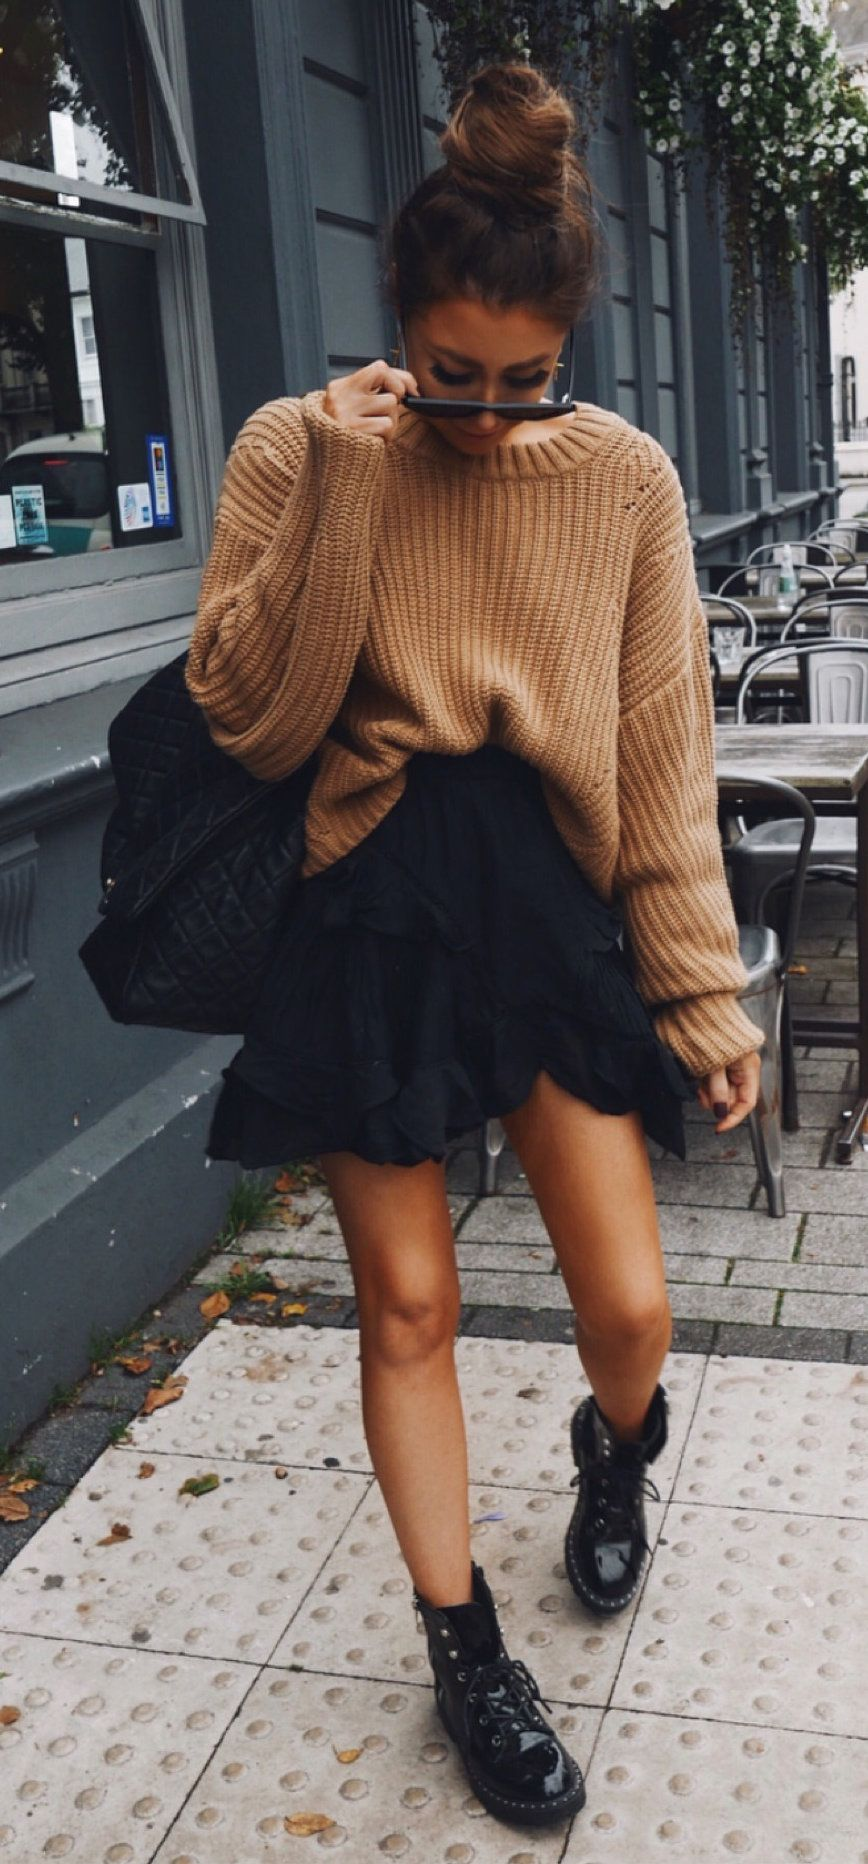 10 Trendy Fall Outfits You Should Already Own Trendy Fall Outfits Mini Skirts Miniskirt Outfits